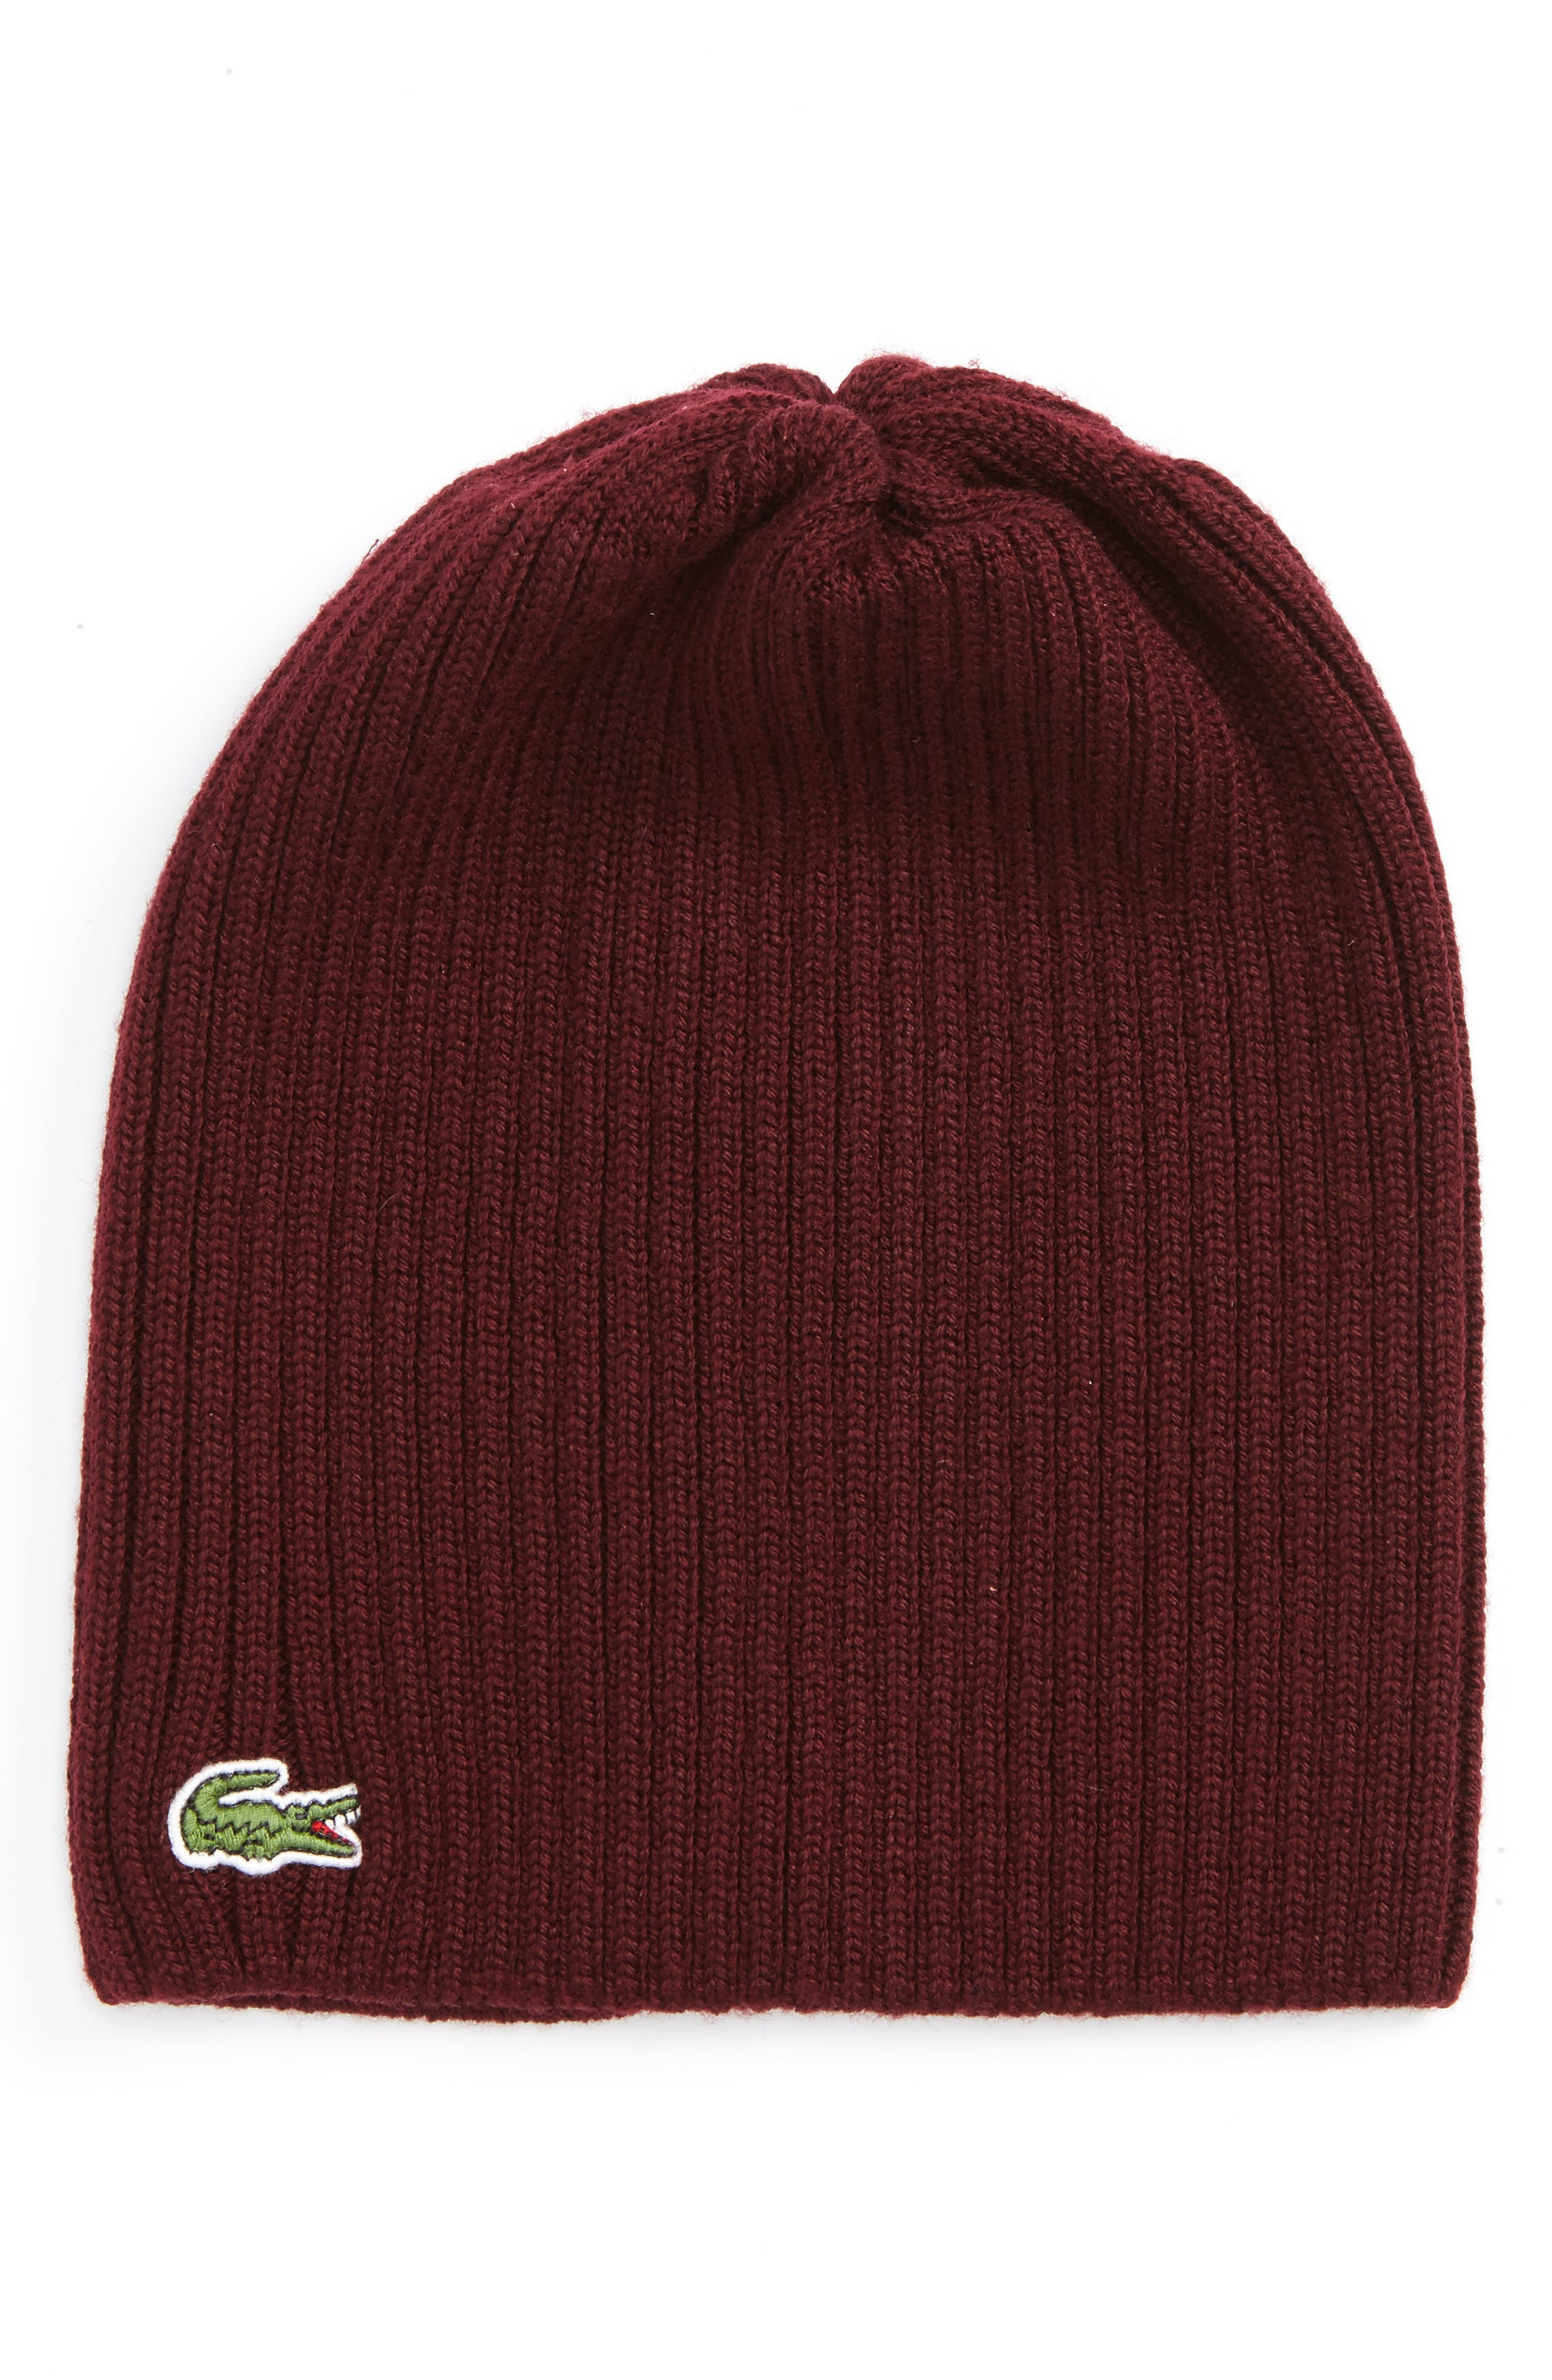 Alternate Image 1 Selected - Lacoste Rib Knit Wool Beanie